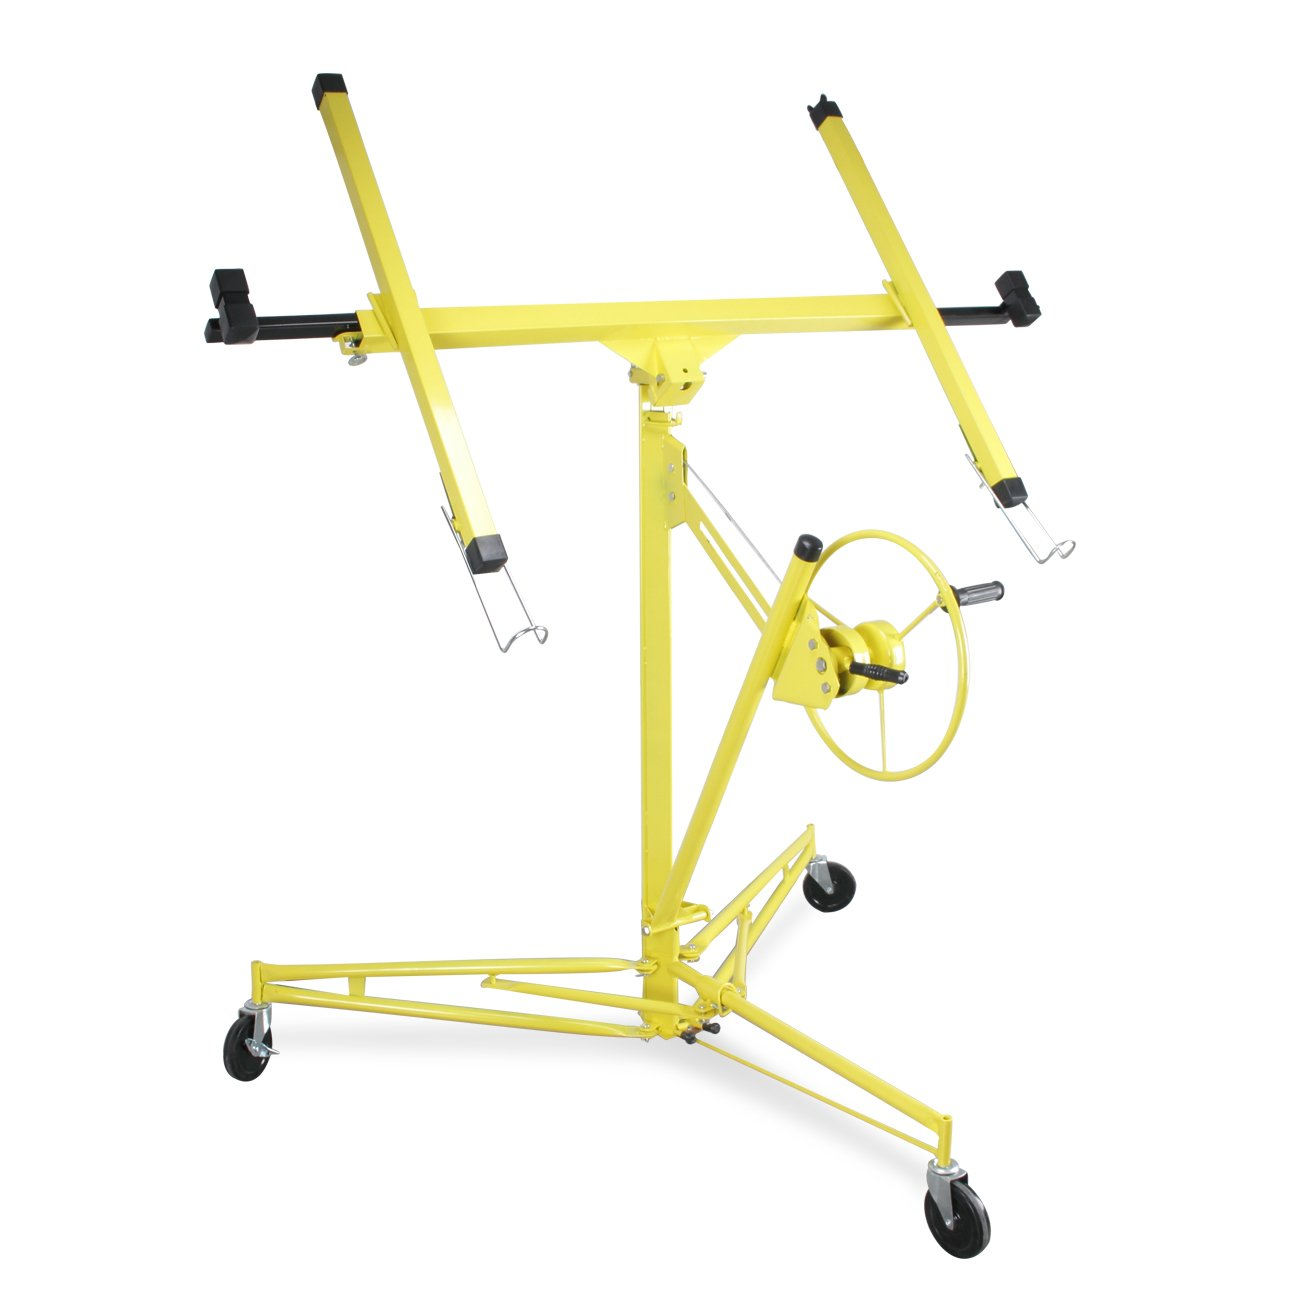 ARKSEN | Drywall Panel Lift | Dry Wall Panel Hoist | Lockable Lifter | Ceiling Max 11 FT | Angled Ceiling Max 15 FT | 150 LB Max | Caster Wheels | 65 Degree Tilt | Yellow